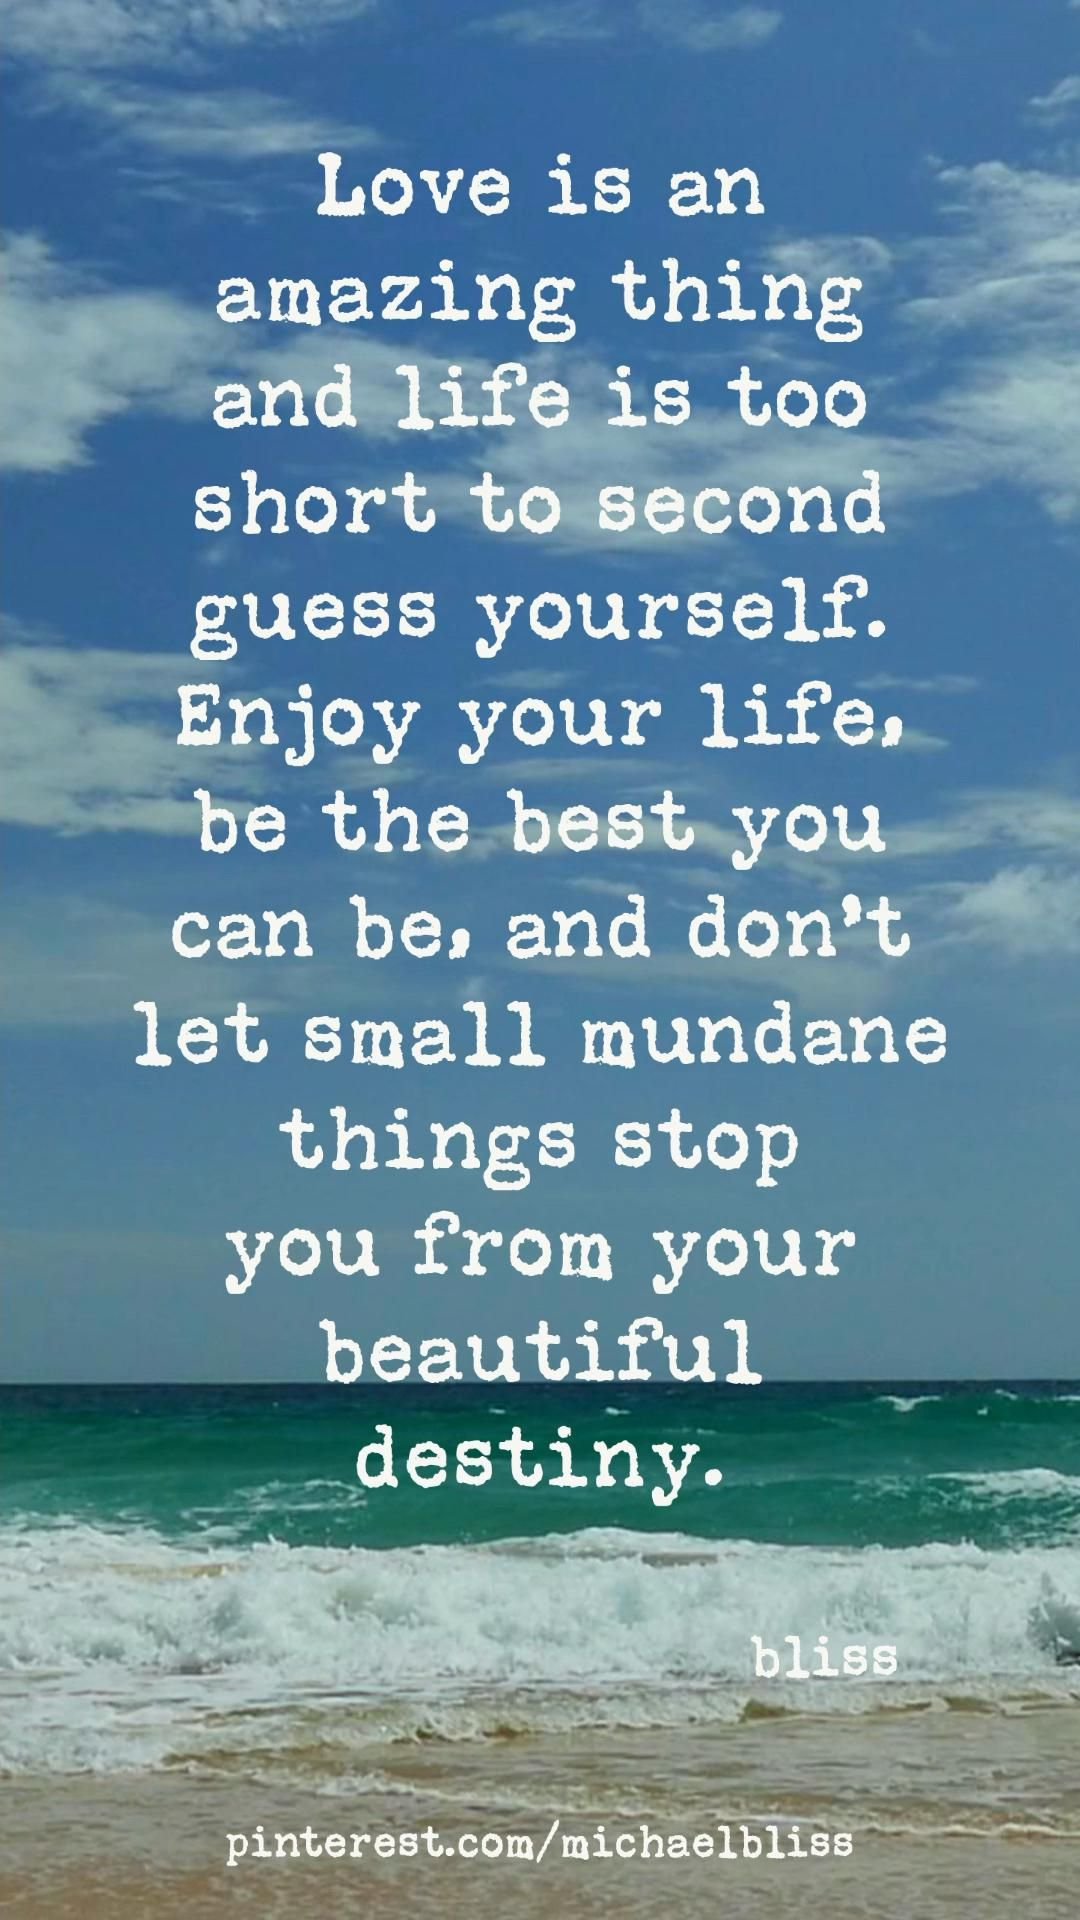 Enjoy your life, be the best you can be. Don't let anything stop you from your destiny.